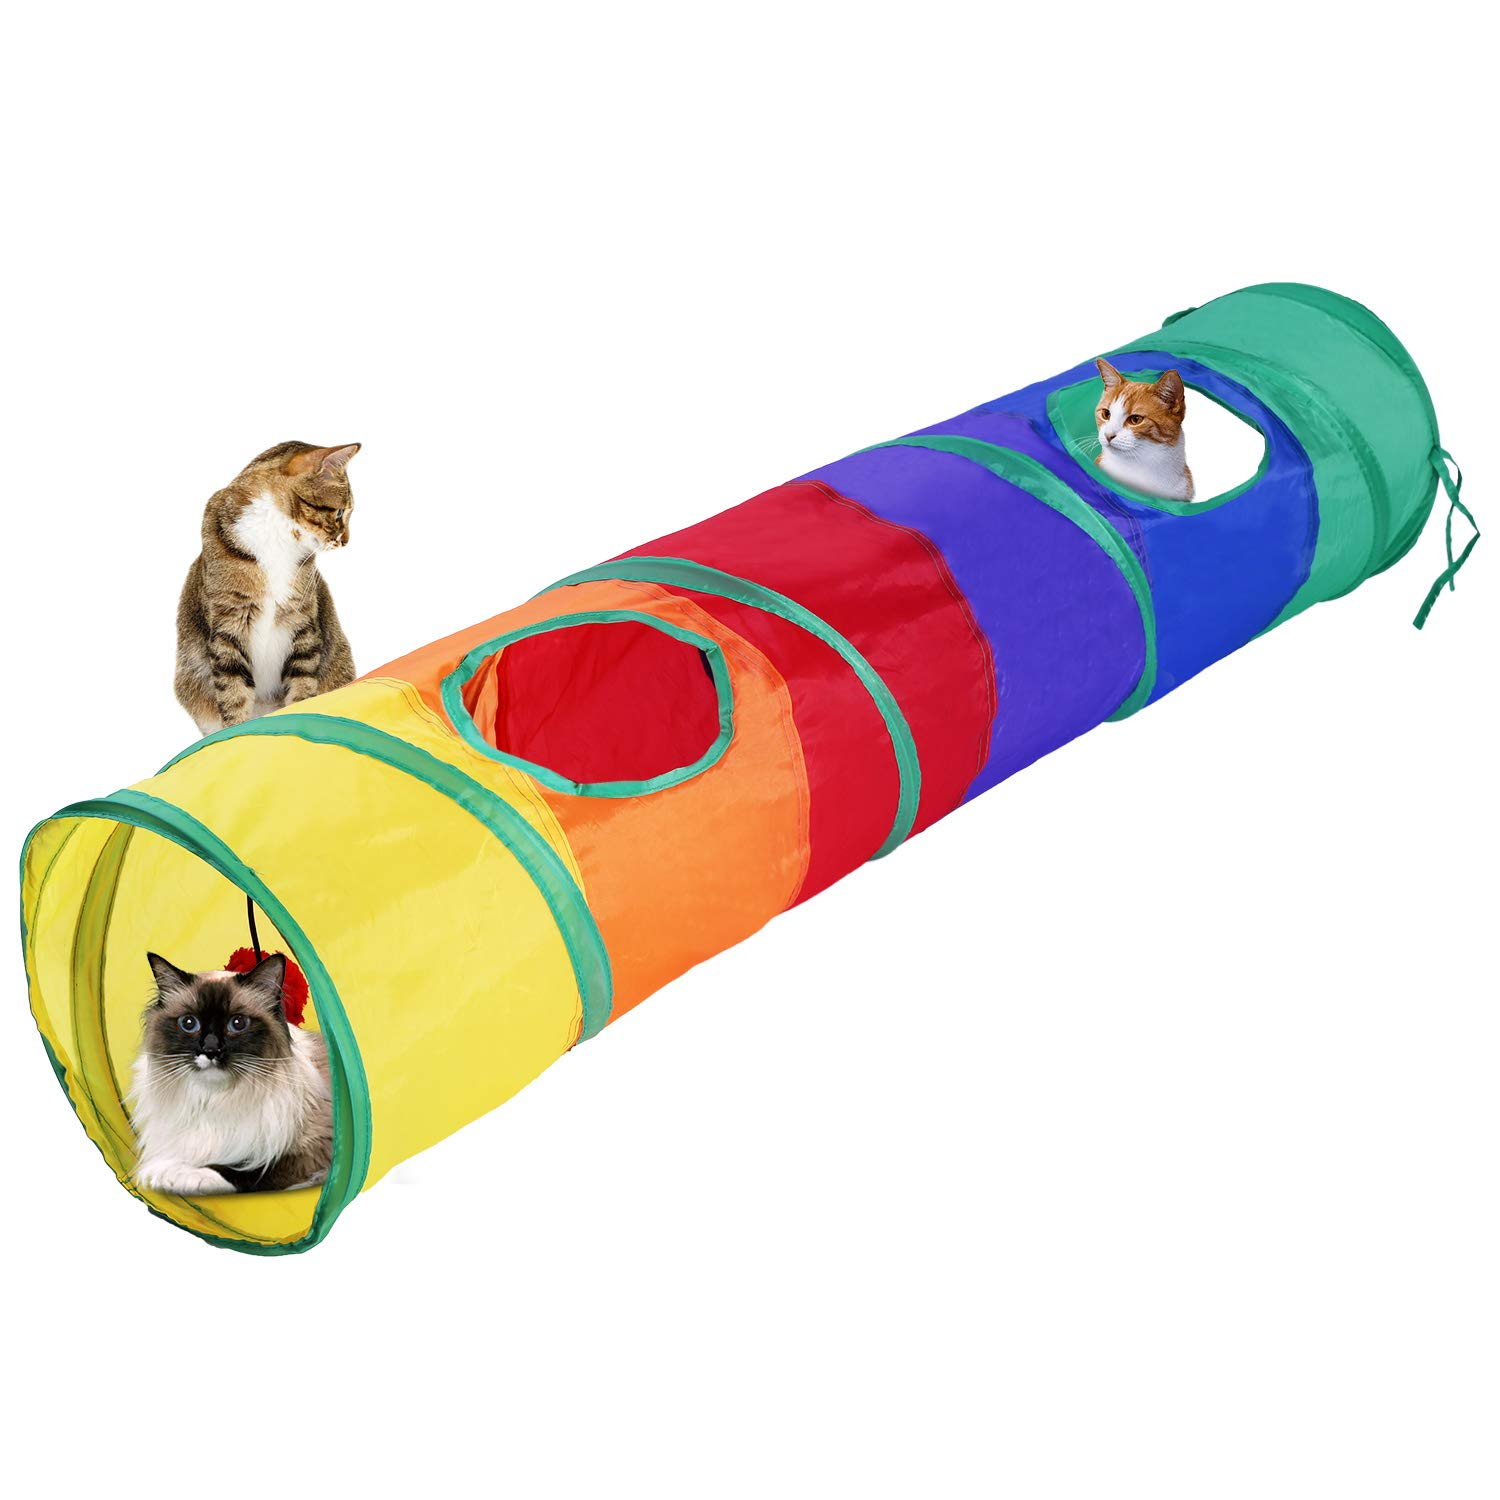 WERTYCITY Cat Tunnel. Large Size, Collapsible Play Toy Tunnel with Ball for Large Cats, Dogs, Rabbits, Puppy, Kitty, Kitten Indoor/Outdoor Use by WERTYCITY (Image #1)